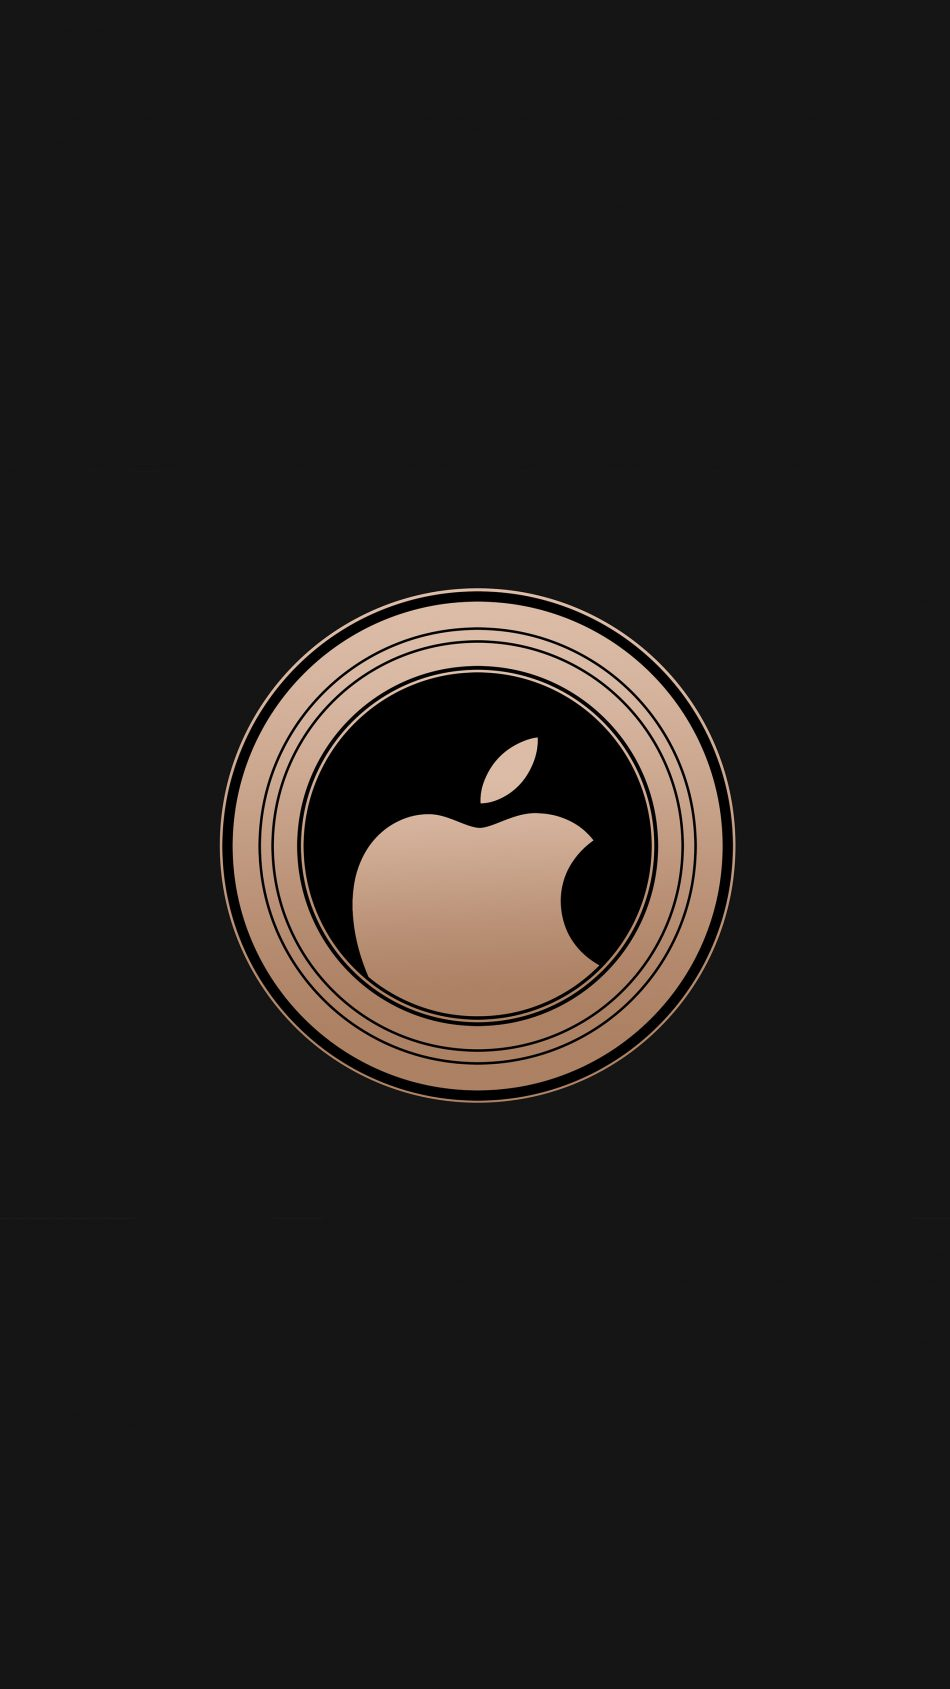 Download Apple Logo Iphone Xs Free Pure 4k Ultra Hd Mobile Wallpaper